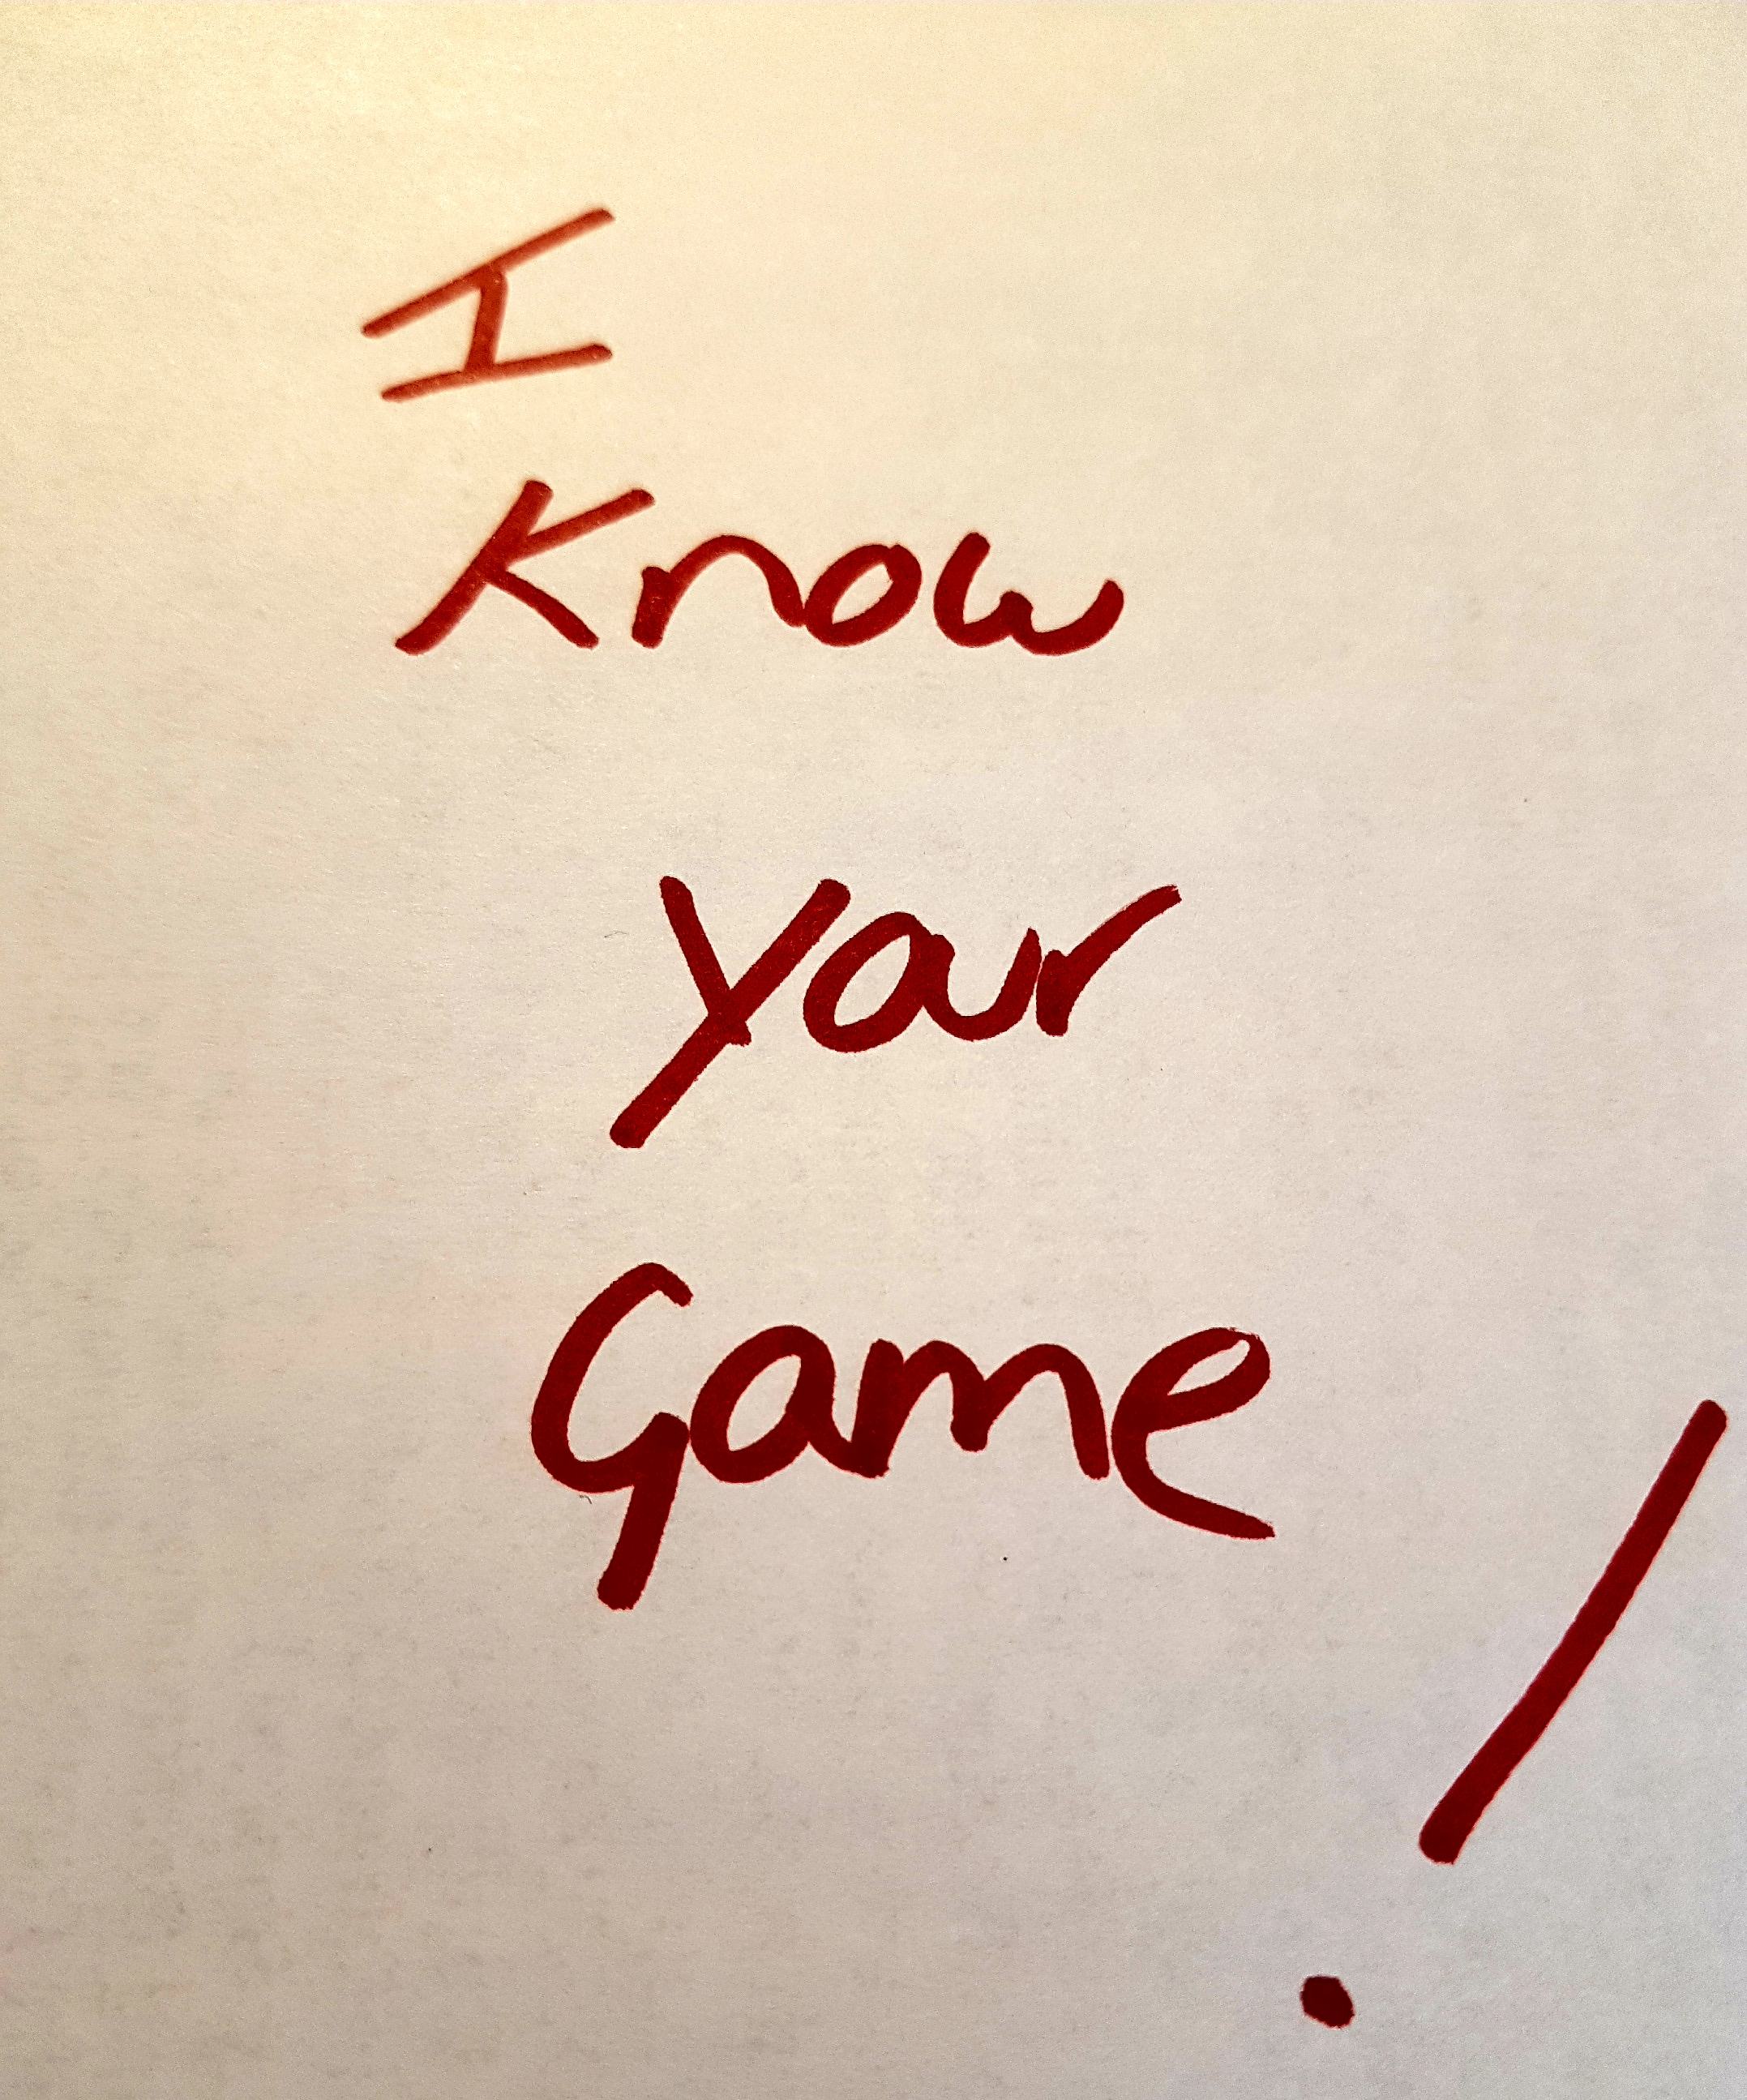 'I know your game!' written on paper in red pen